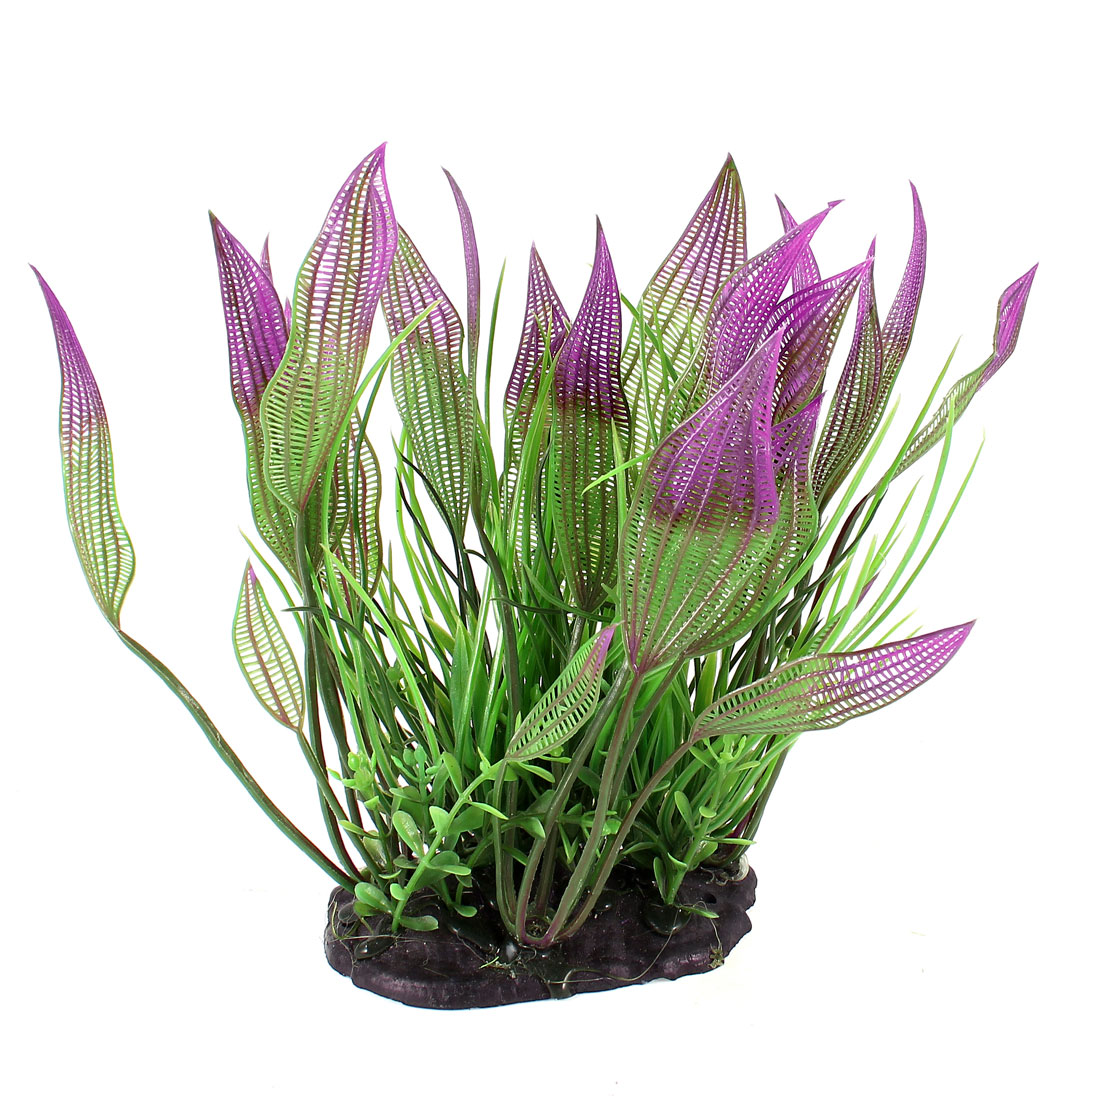 Aquarium Tanks Aquascaping Green Light Purple Plastic Decor Water Plant 6.3""